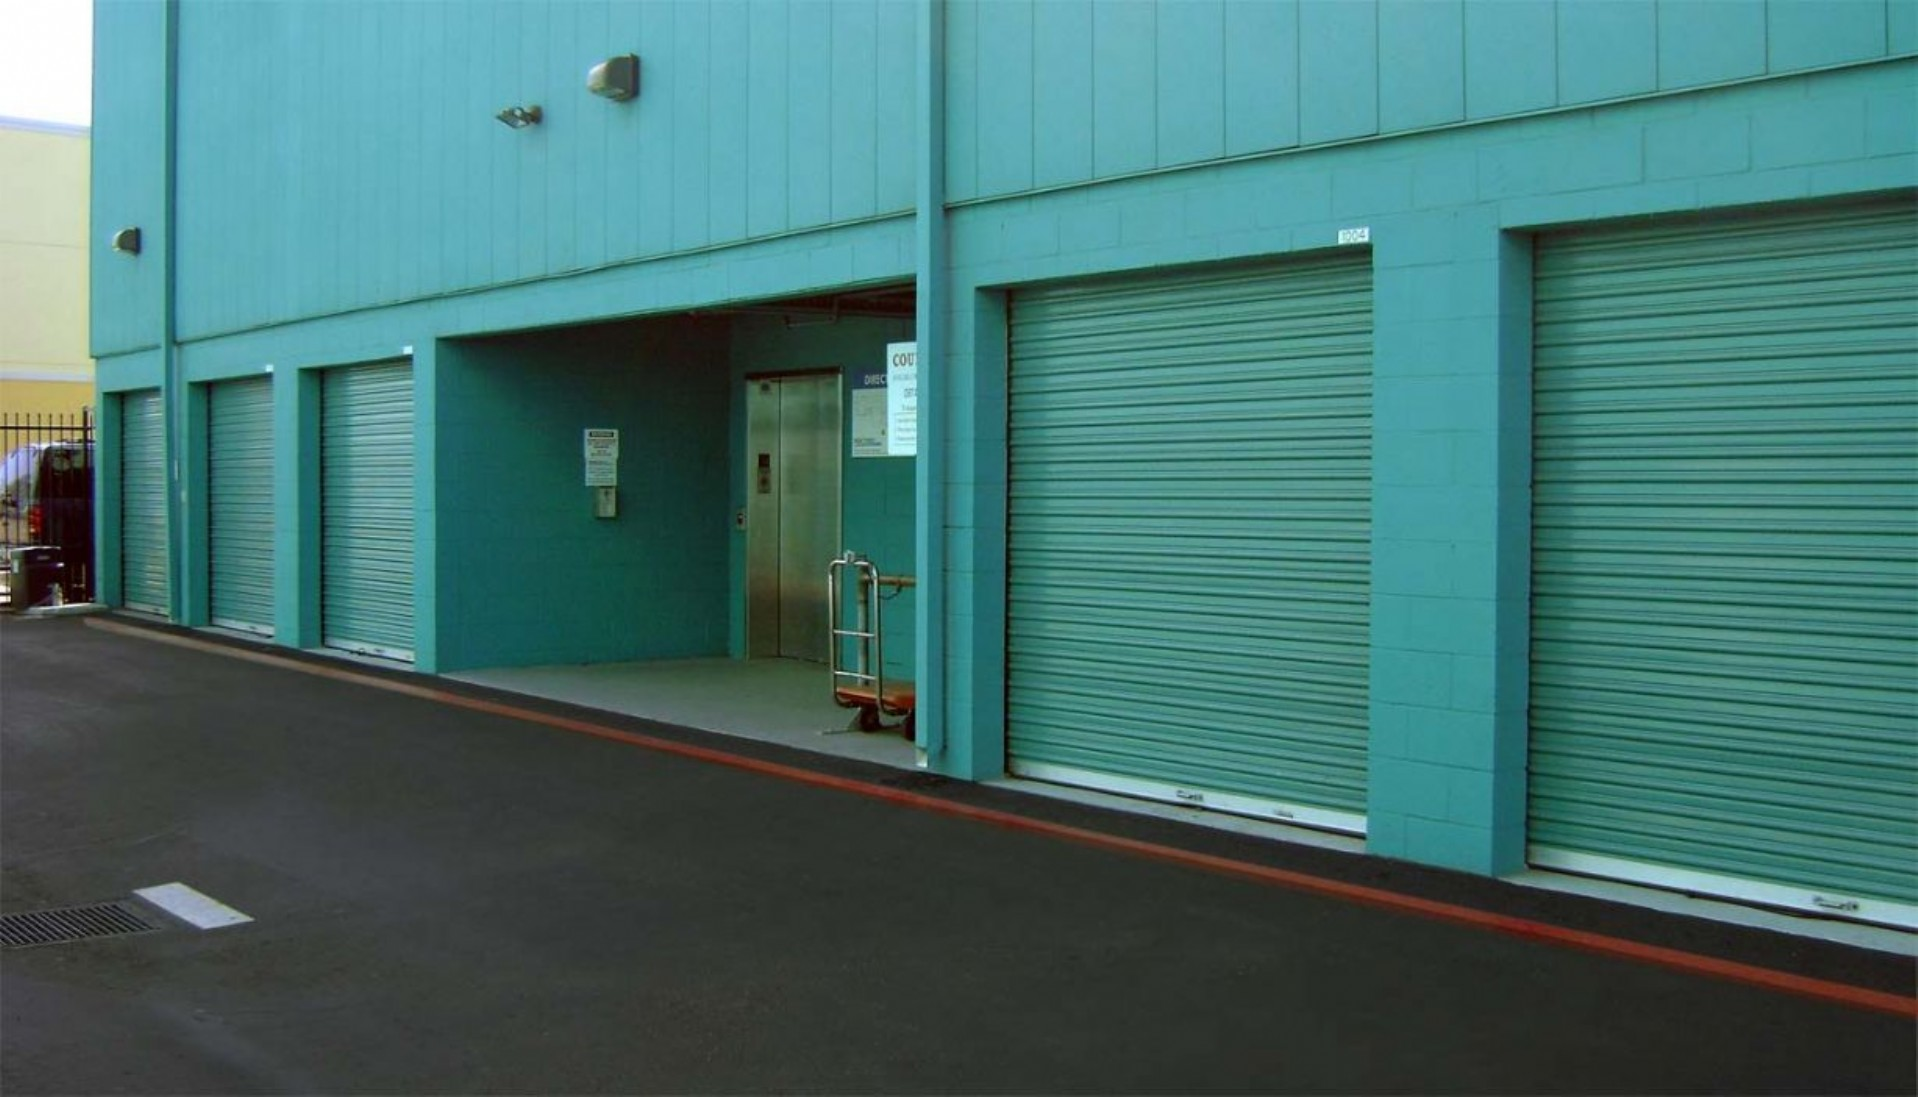 Price Self Storage Pacific Beach drive up units with roll up doors and an easy access elevator to upper levels of the building